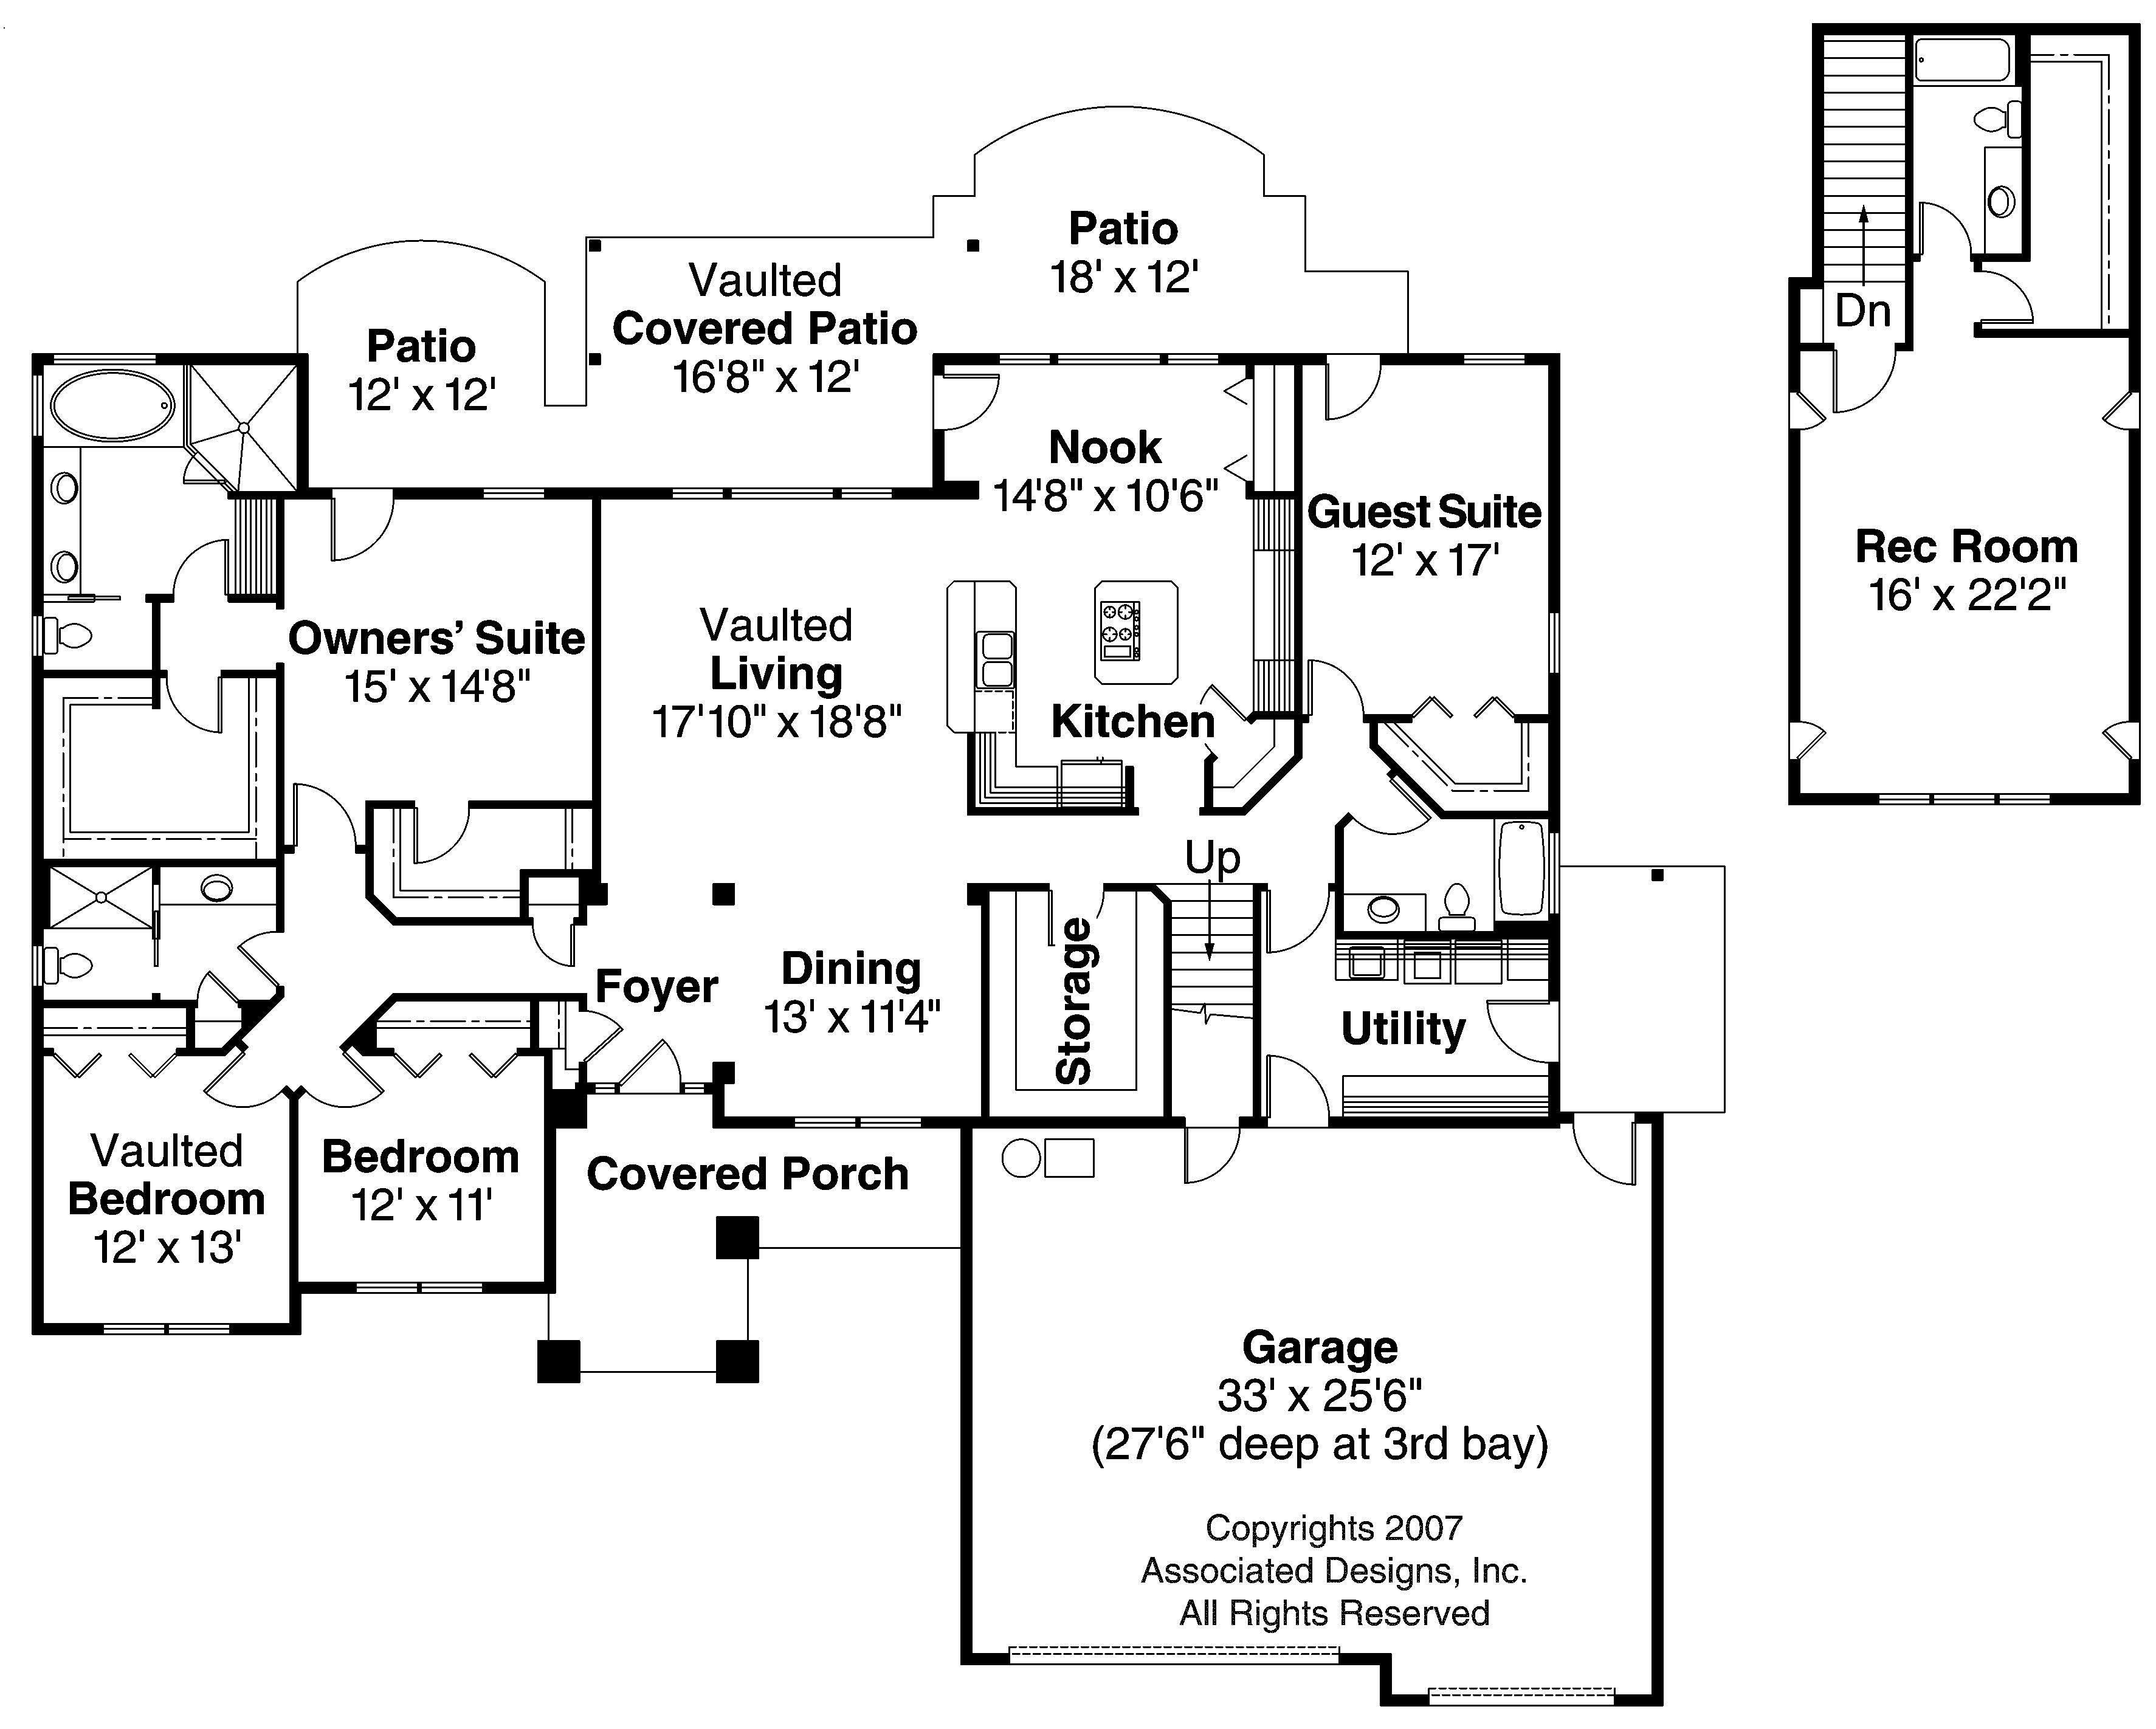 3 bedroom house plans adi lr313 891 593 small bungalow house plans home design